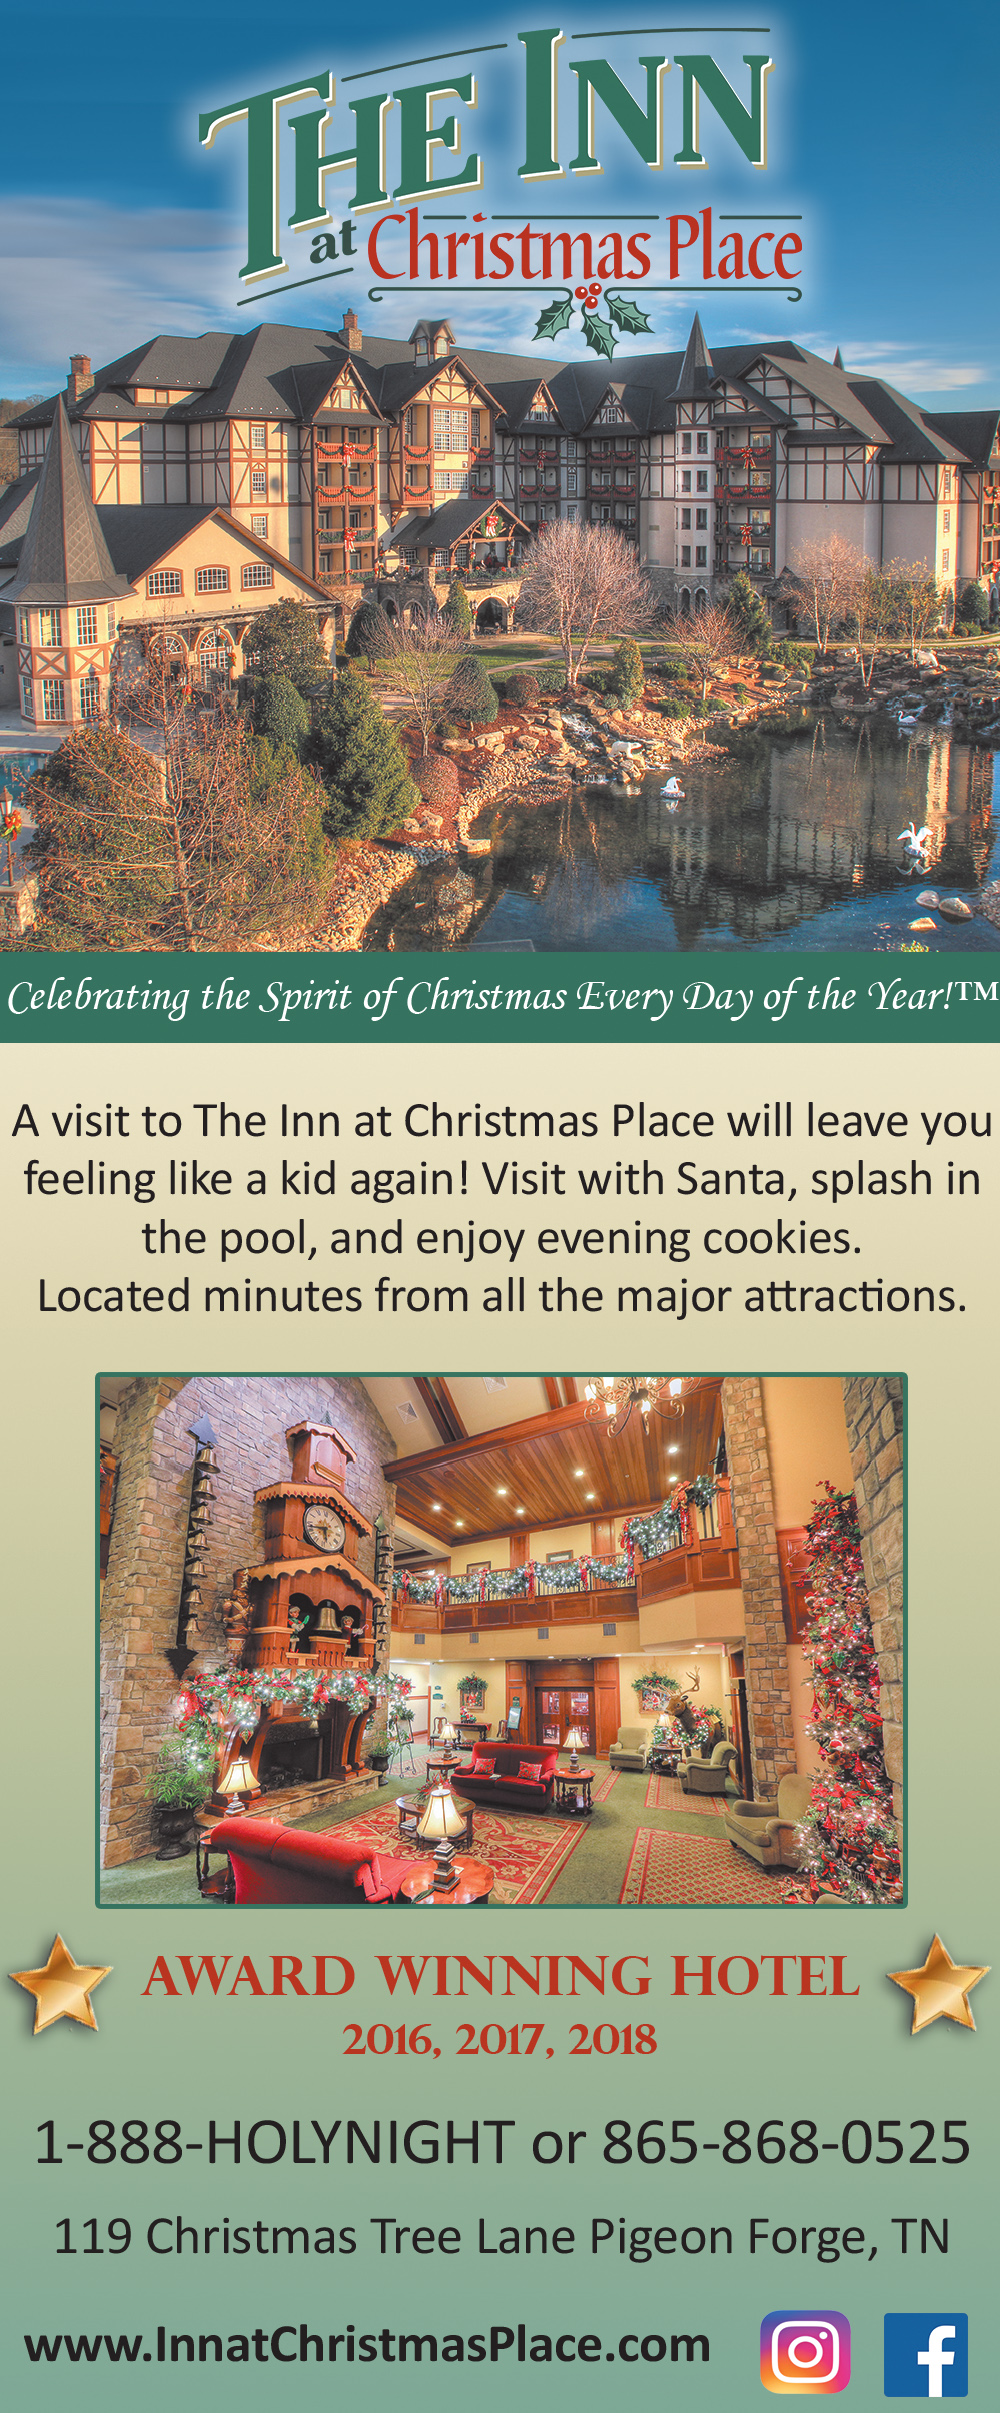 The Inn at Christmas Place 2019 SMLB Ad.jpg